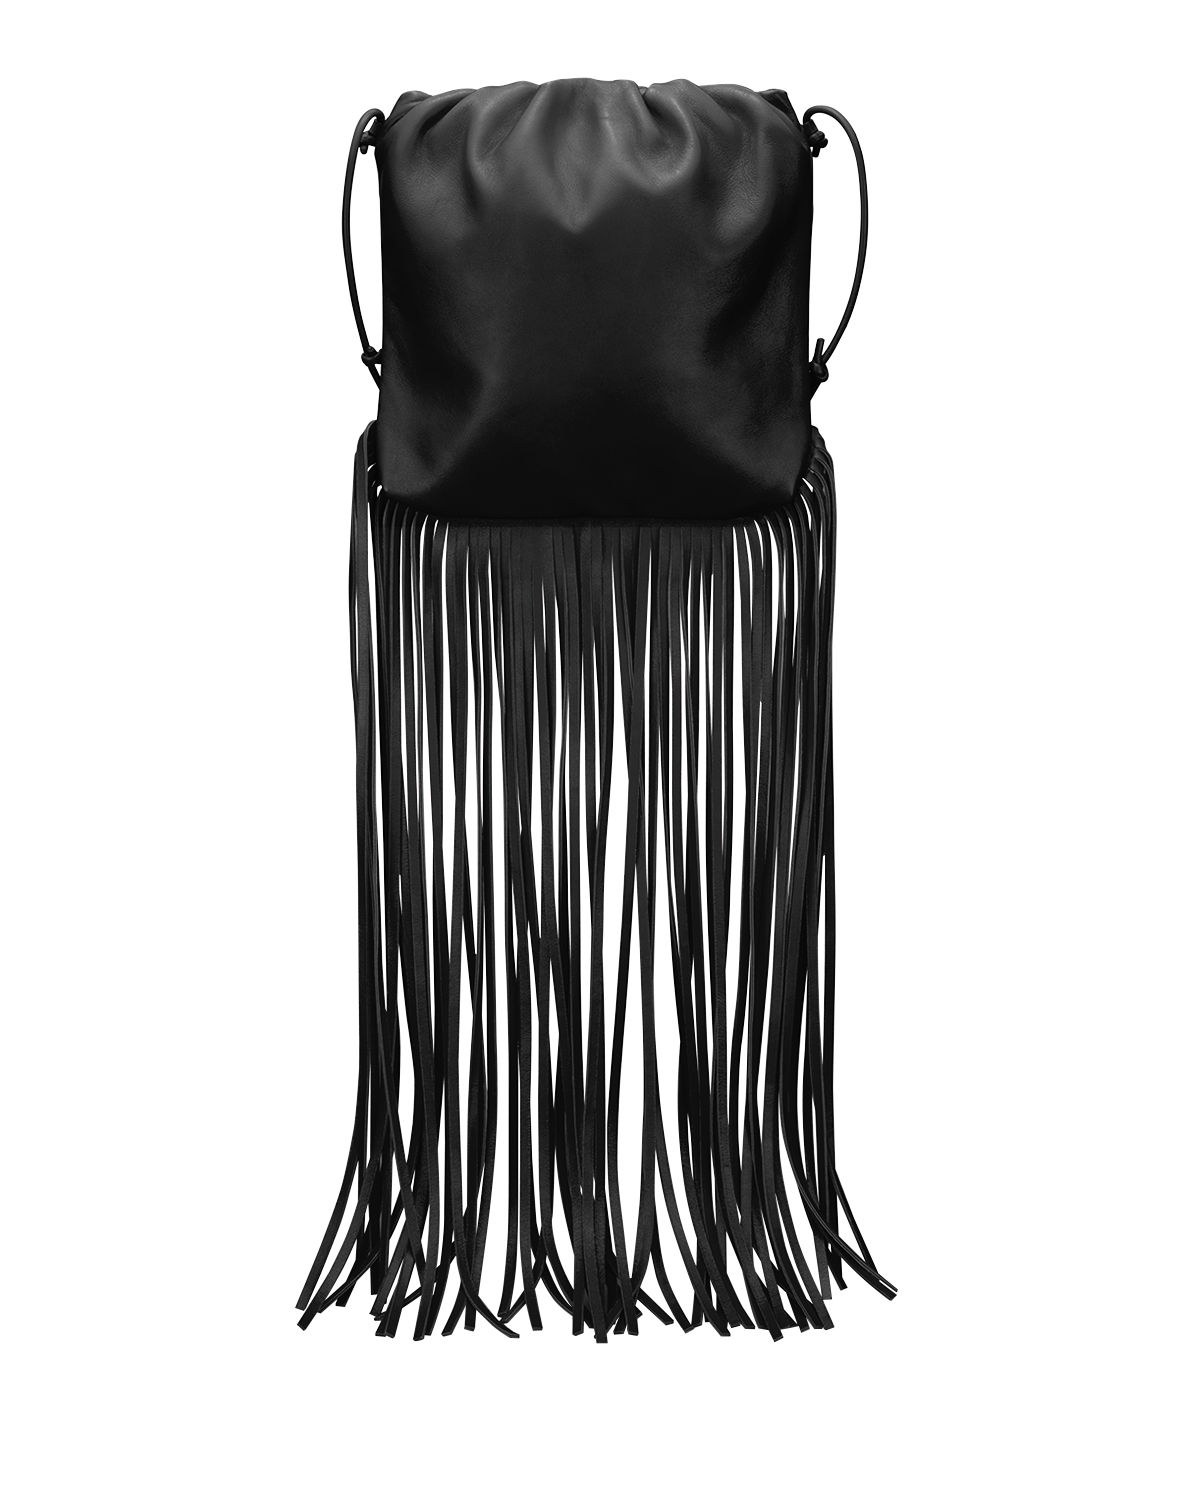 The Fringe Pouch Bag